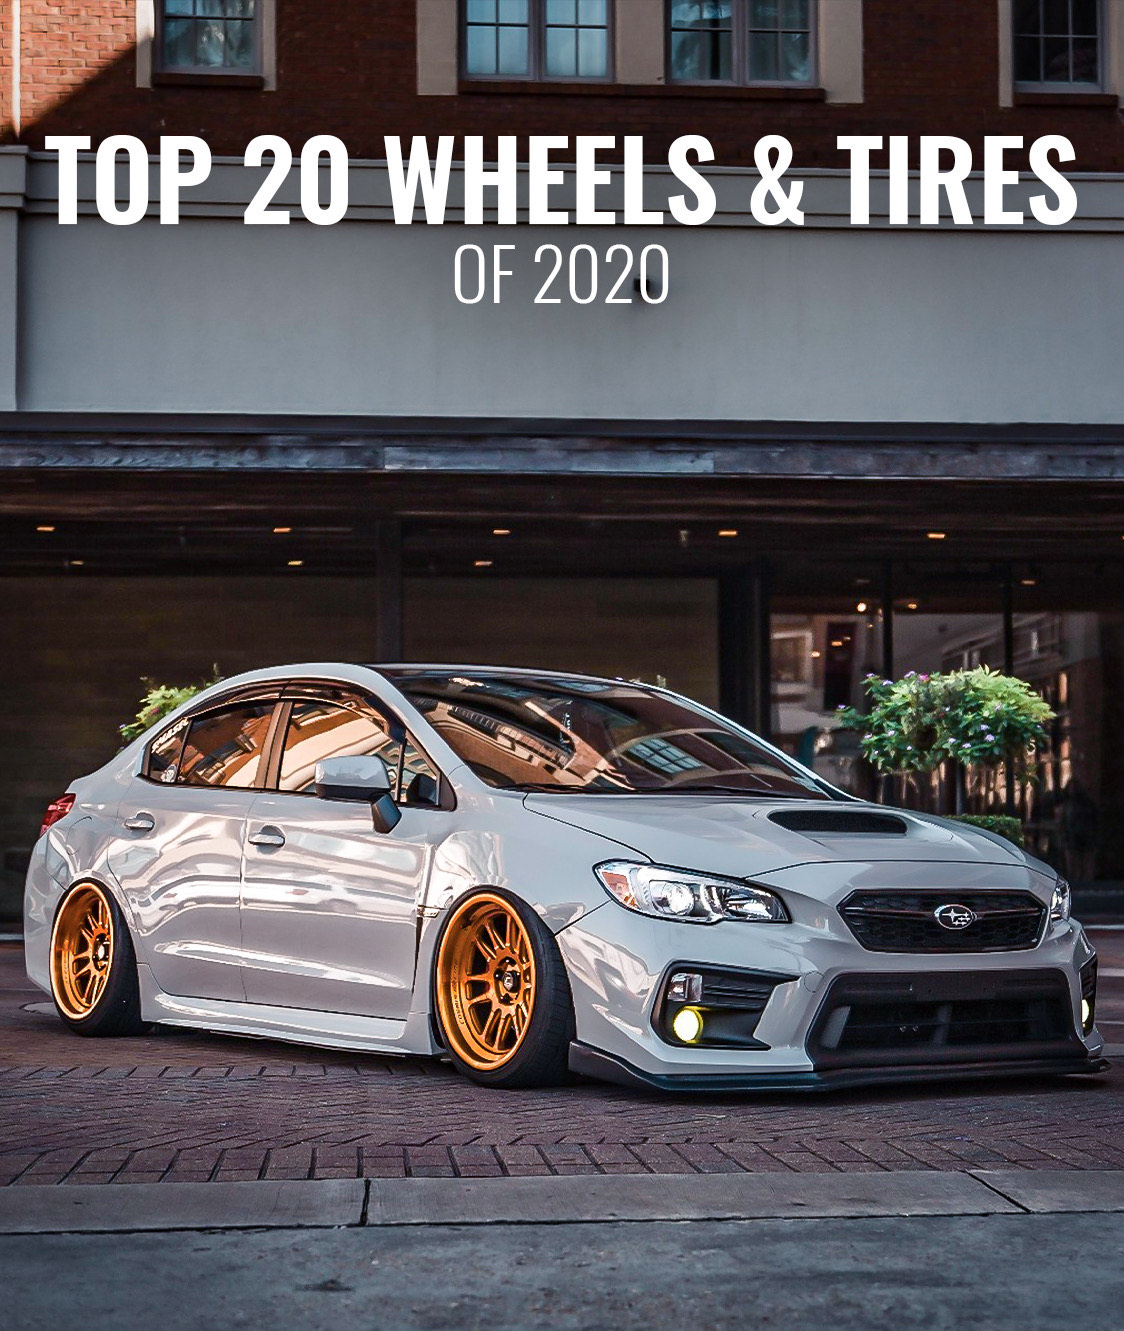 Fitment Industries | Top 20 Wheels & Tires Mobile